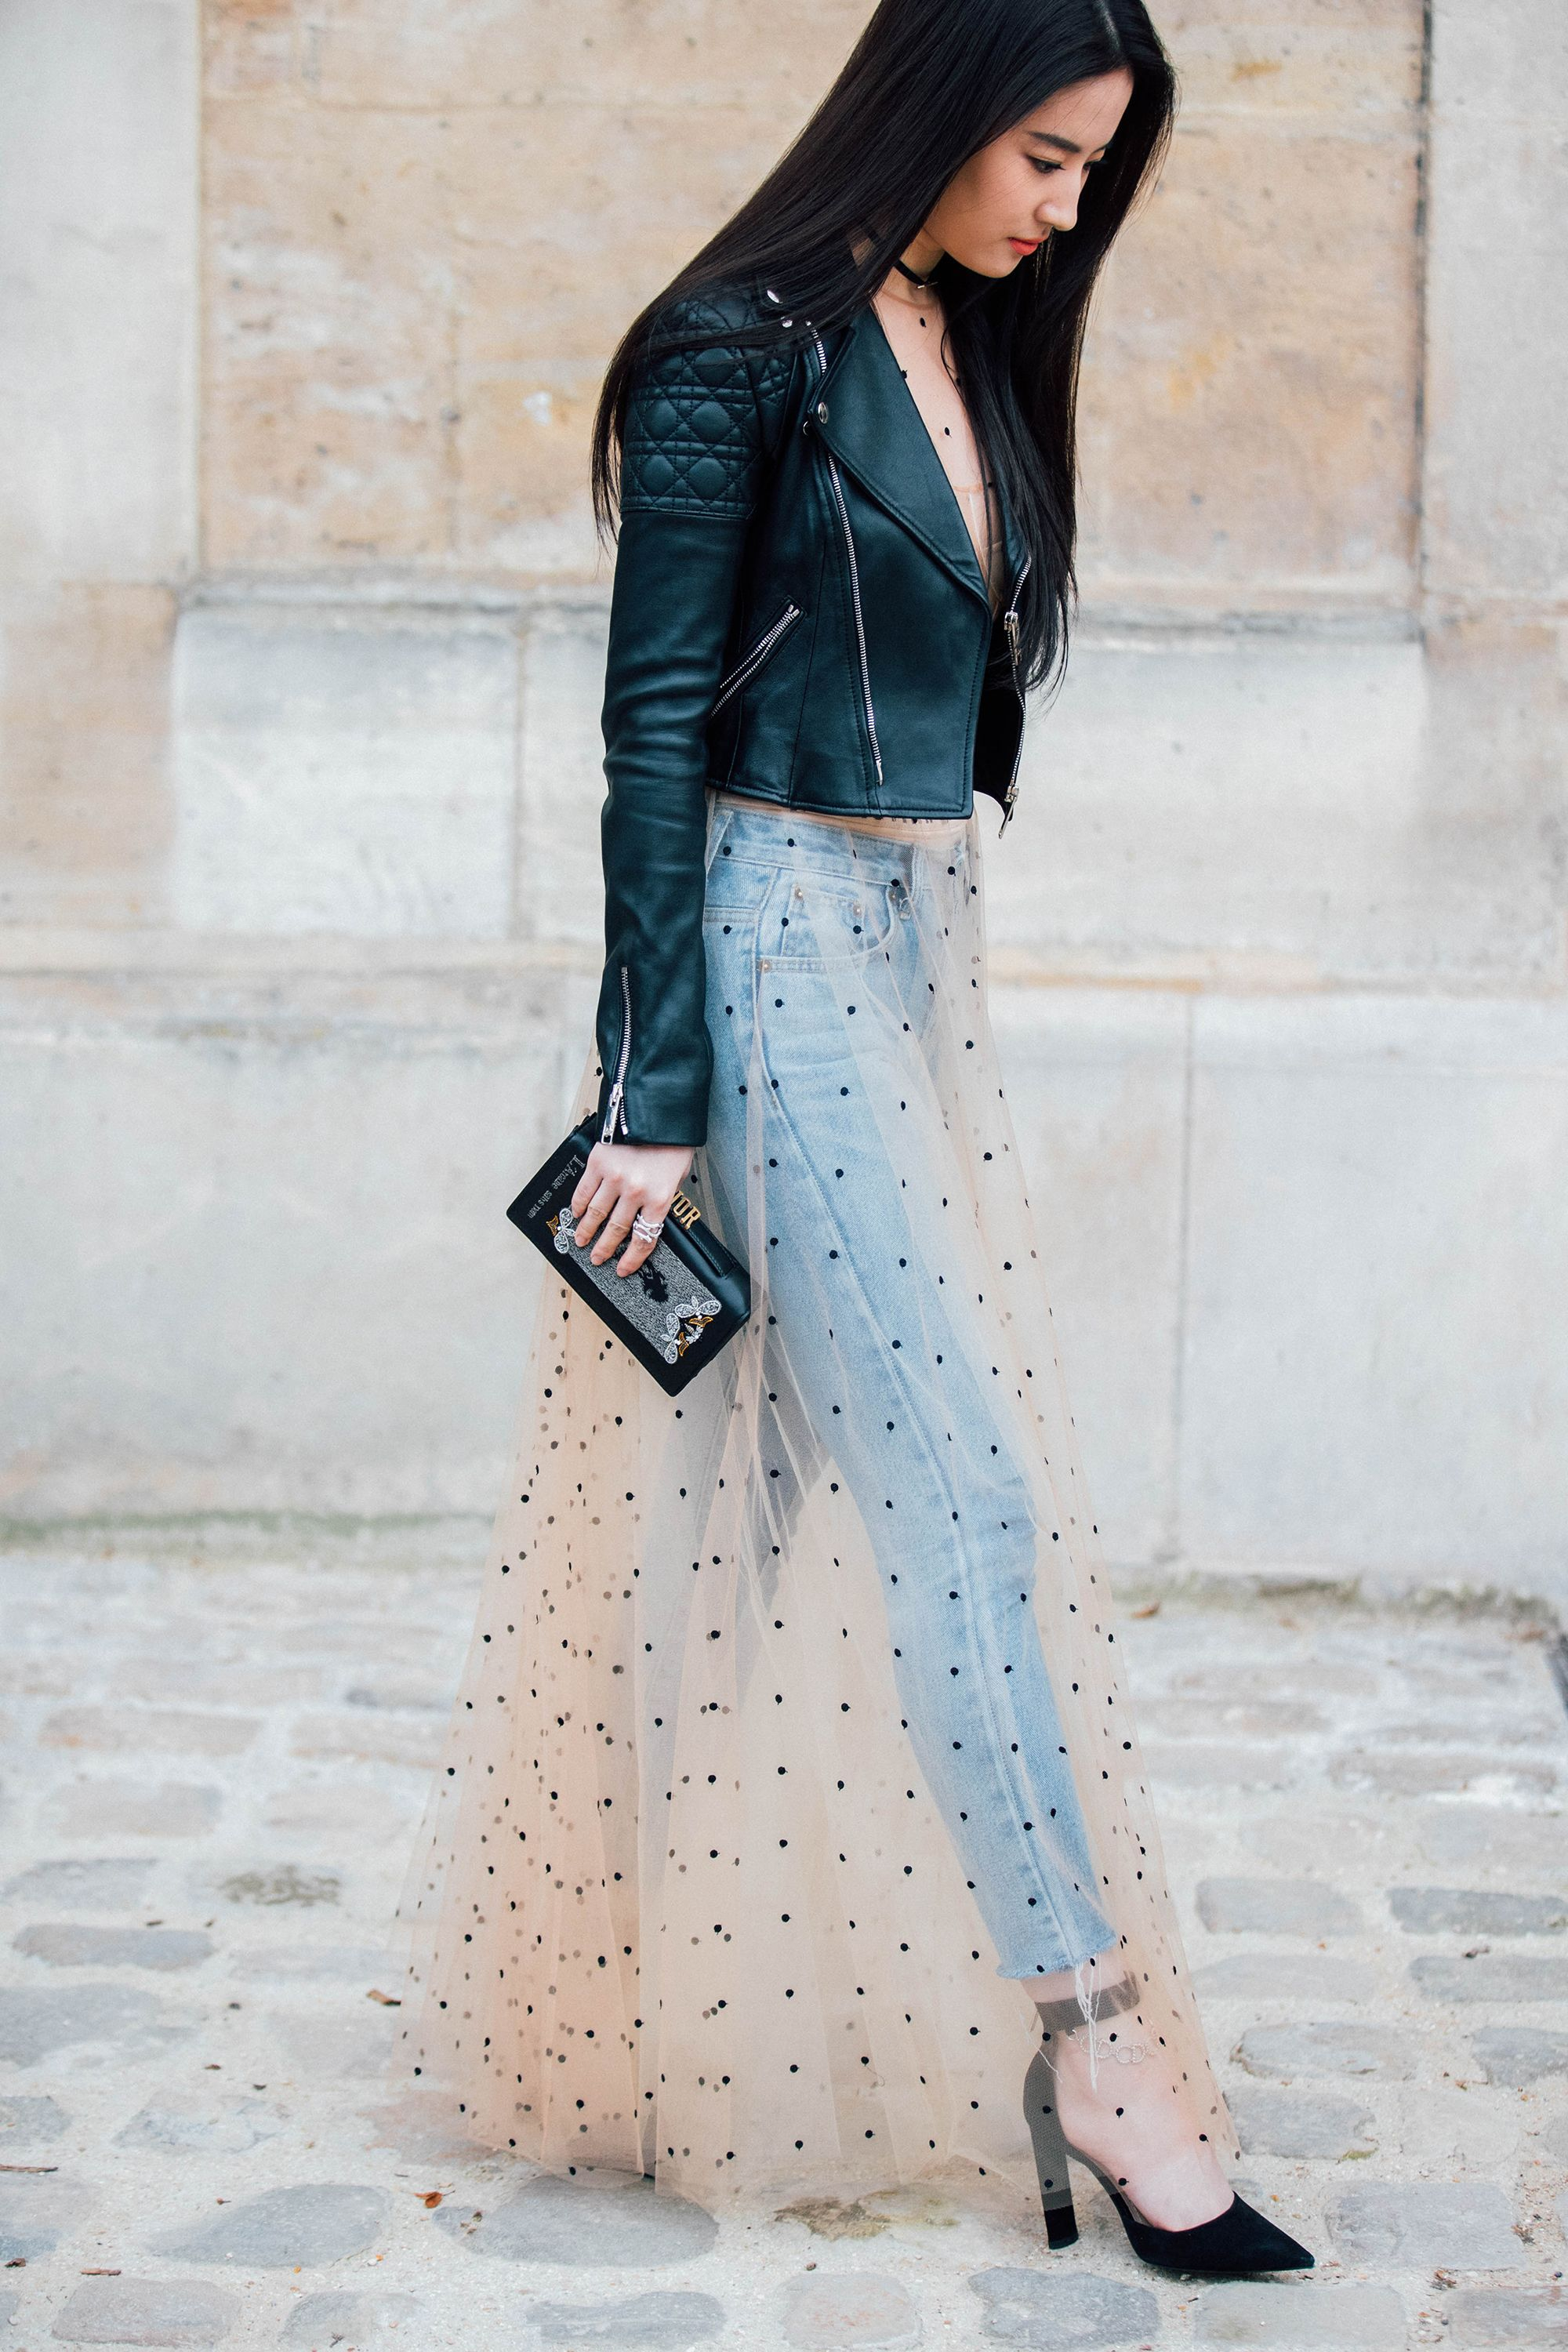 Paris fashion week street style street styles fashion Fashion street style pinterest